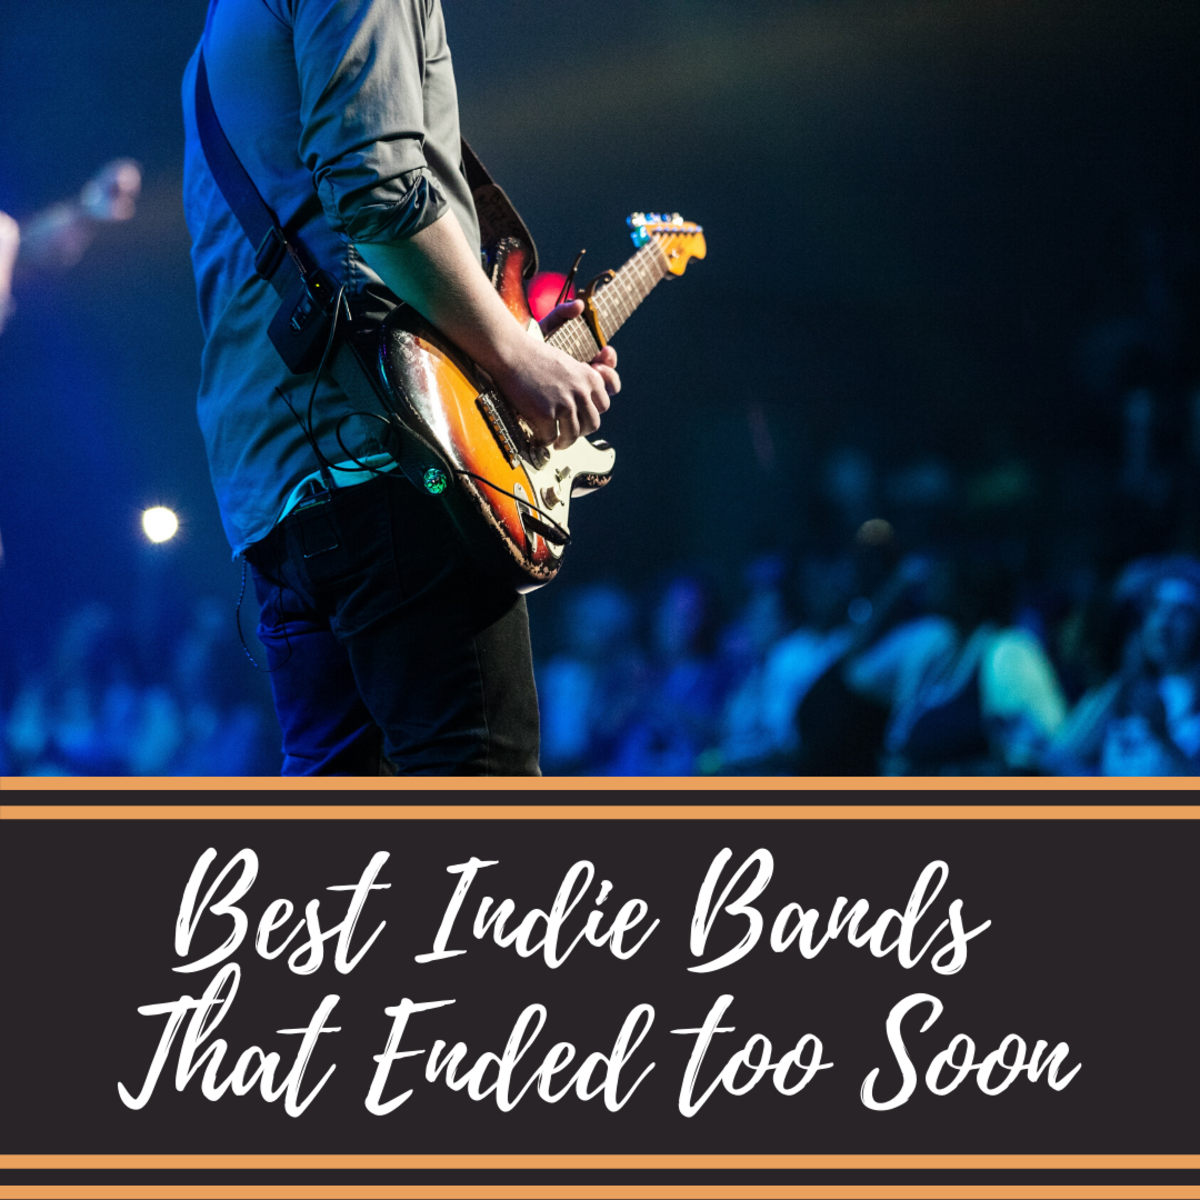 Ten Best Indie Bands That Broke Up or Ended Too Soon